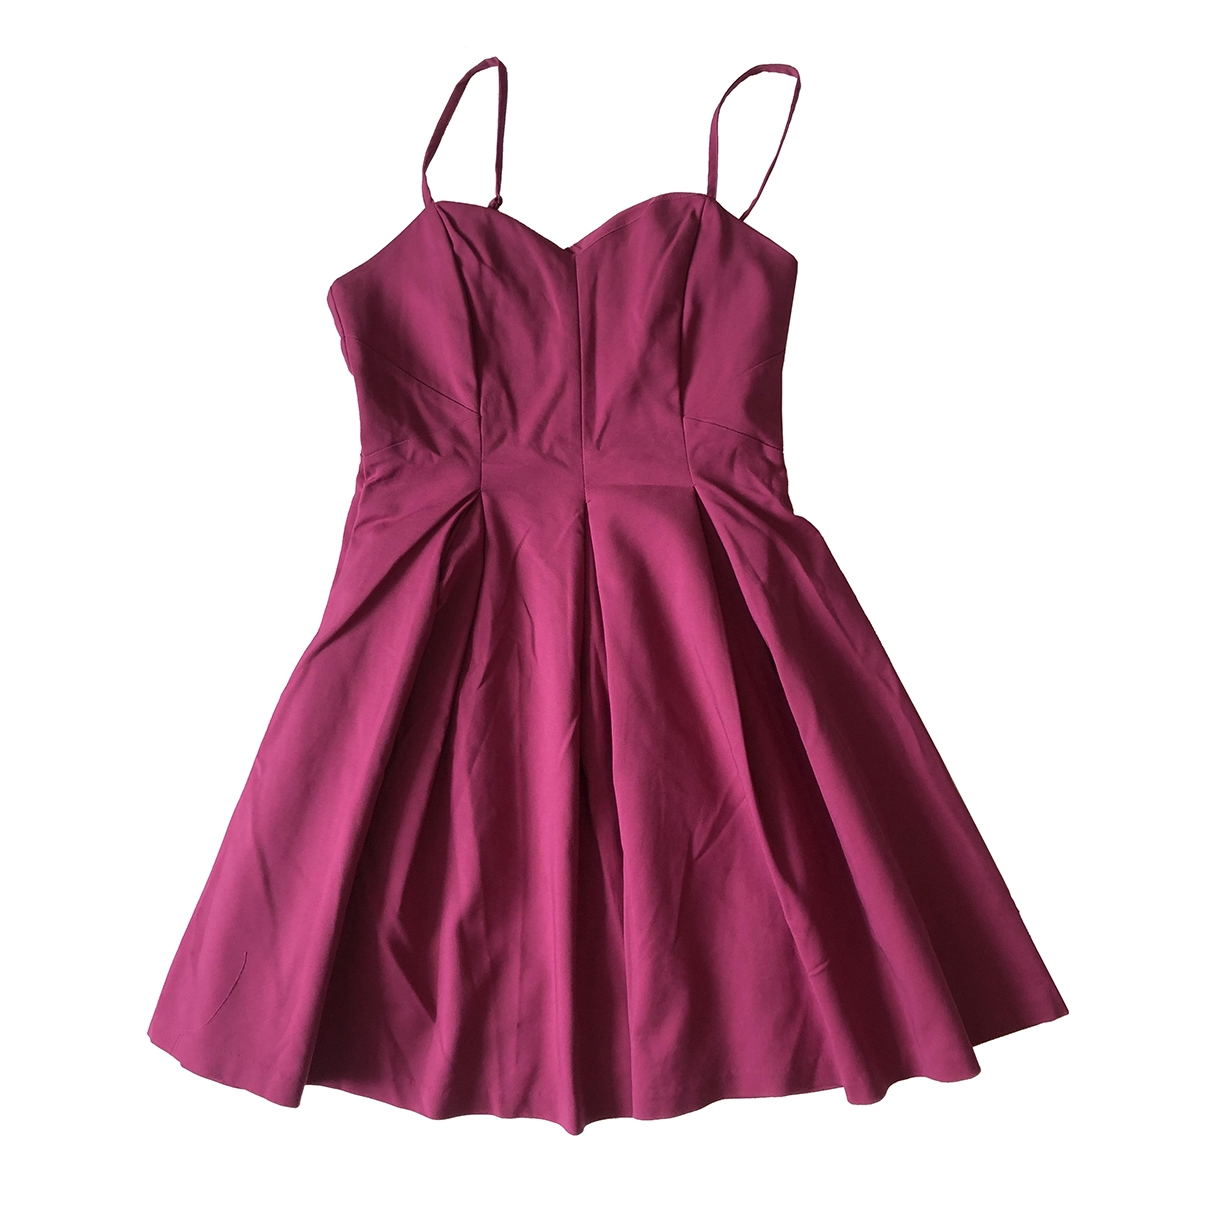 Non Signe / Unsigned \N Kleid in  Rosa Baumwolle - Elasthan